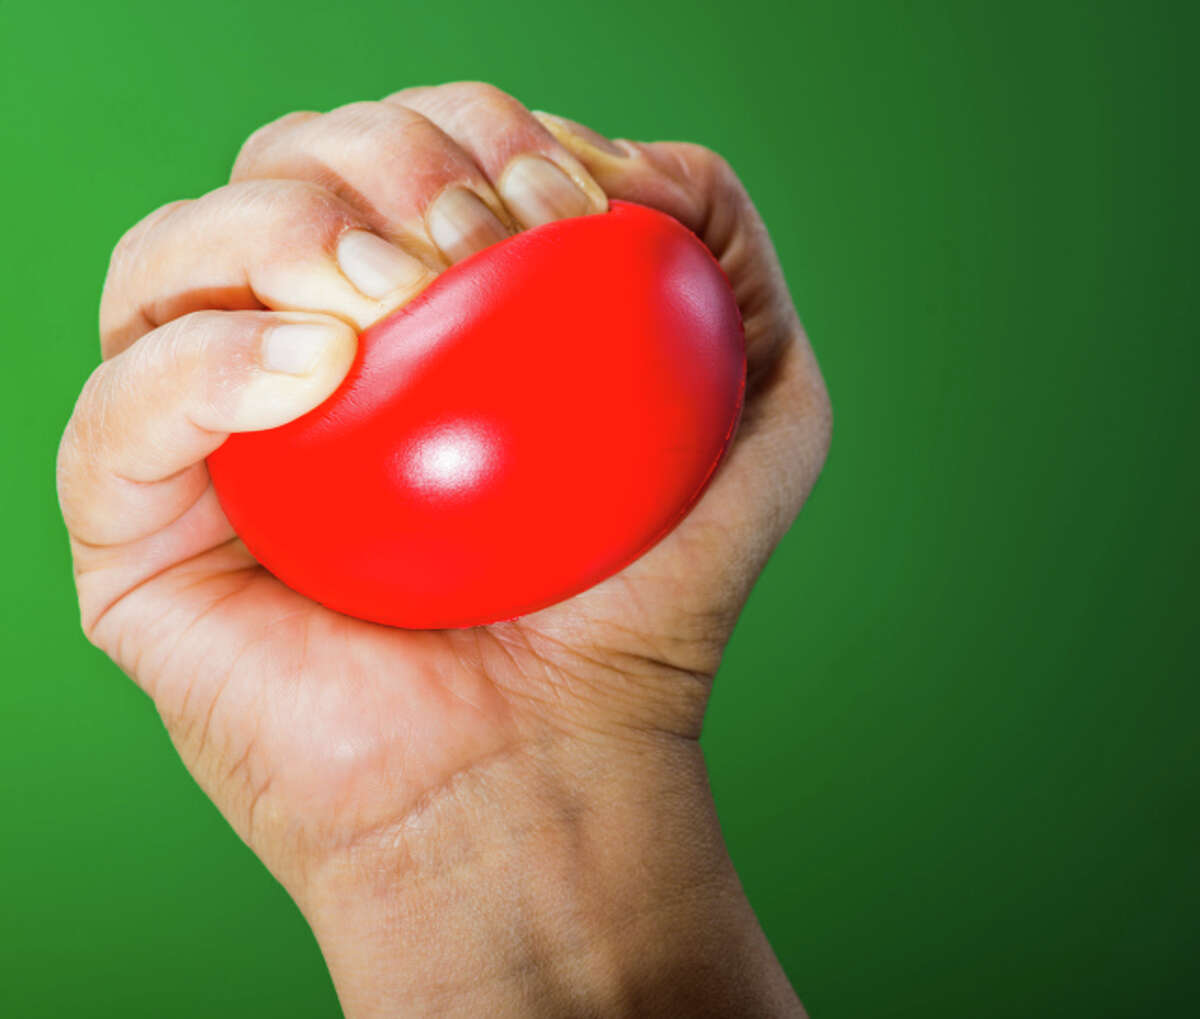 Stress reducing kits Sometimes, when someone receives a gift that addresses a problem, it can be perceived as a judgment. The person receiving the stress ball may wonder what about their behavior prompted such a gift. Subsequently, they may pull away, affecting your work relationship.